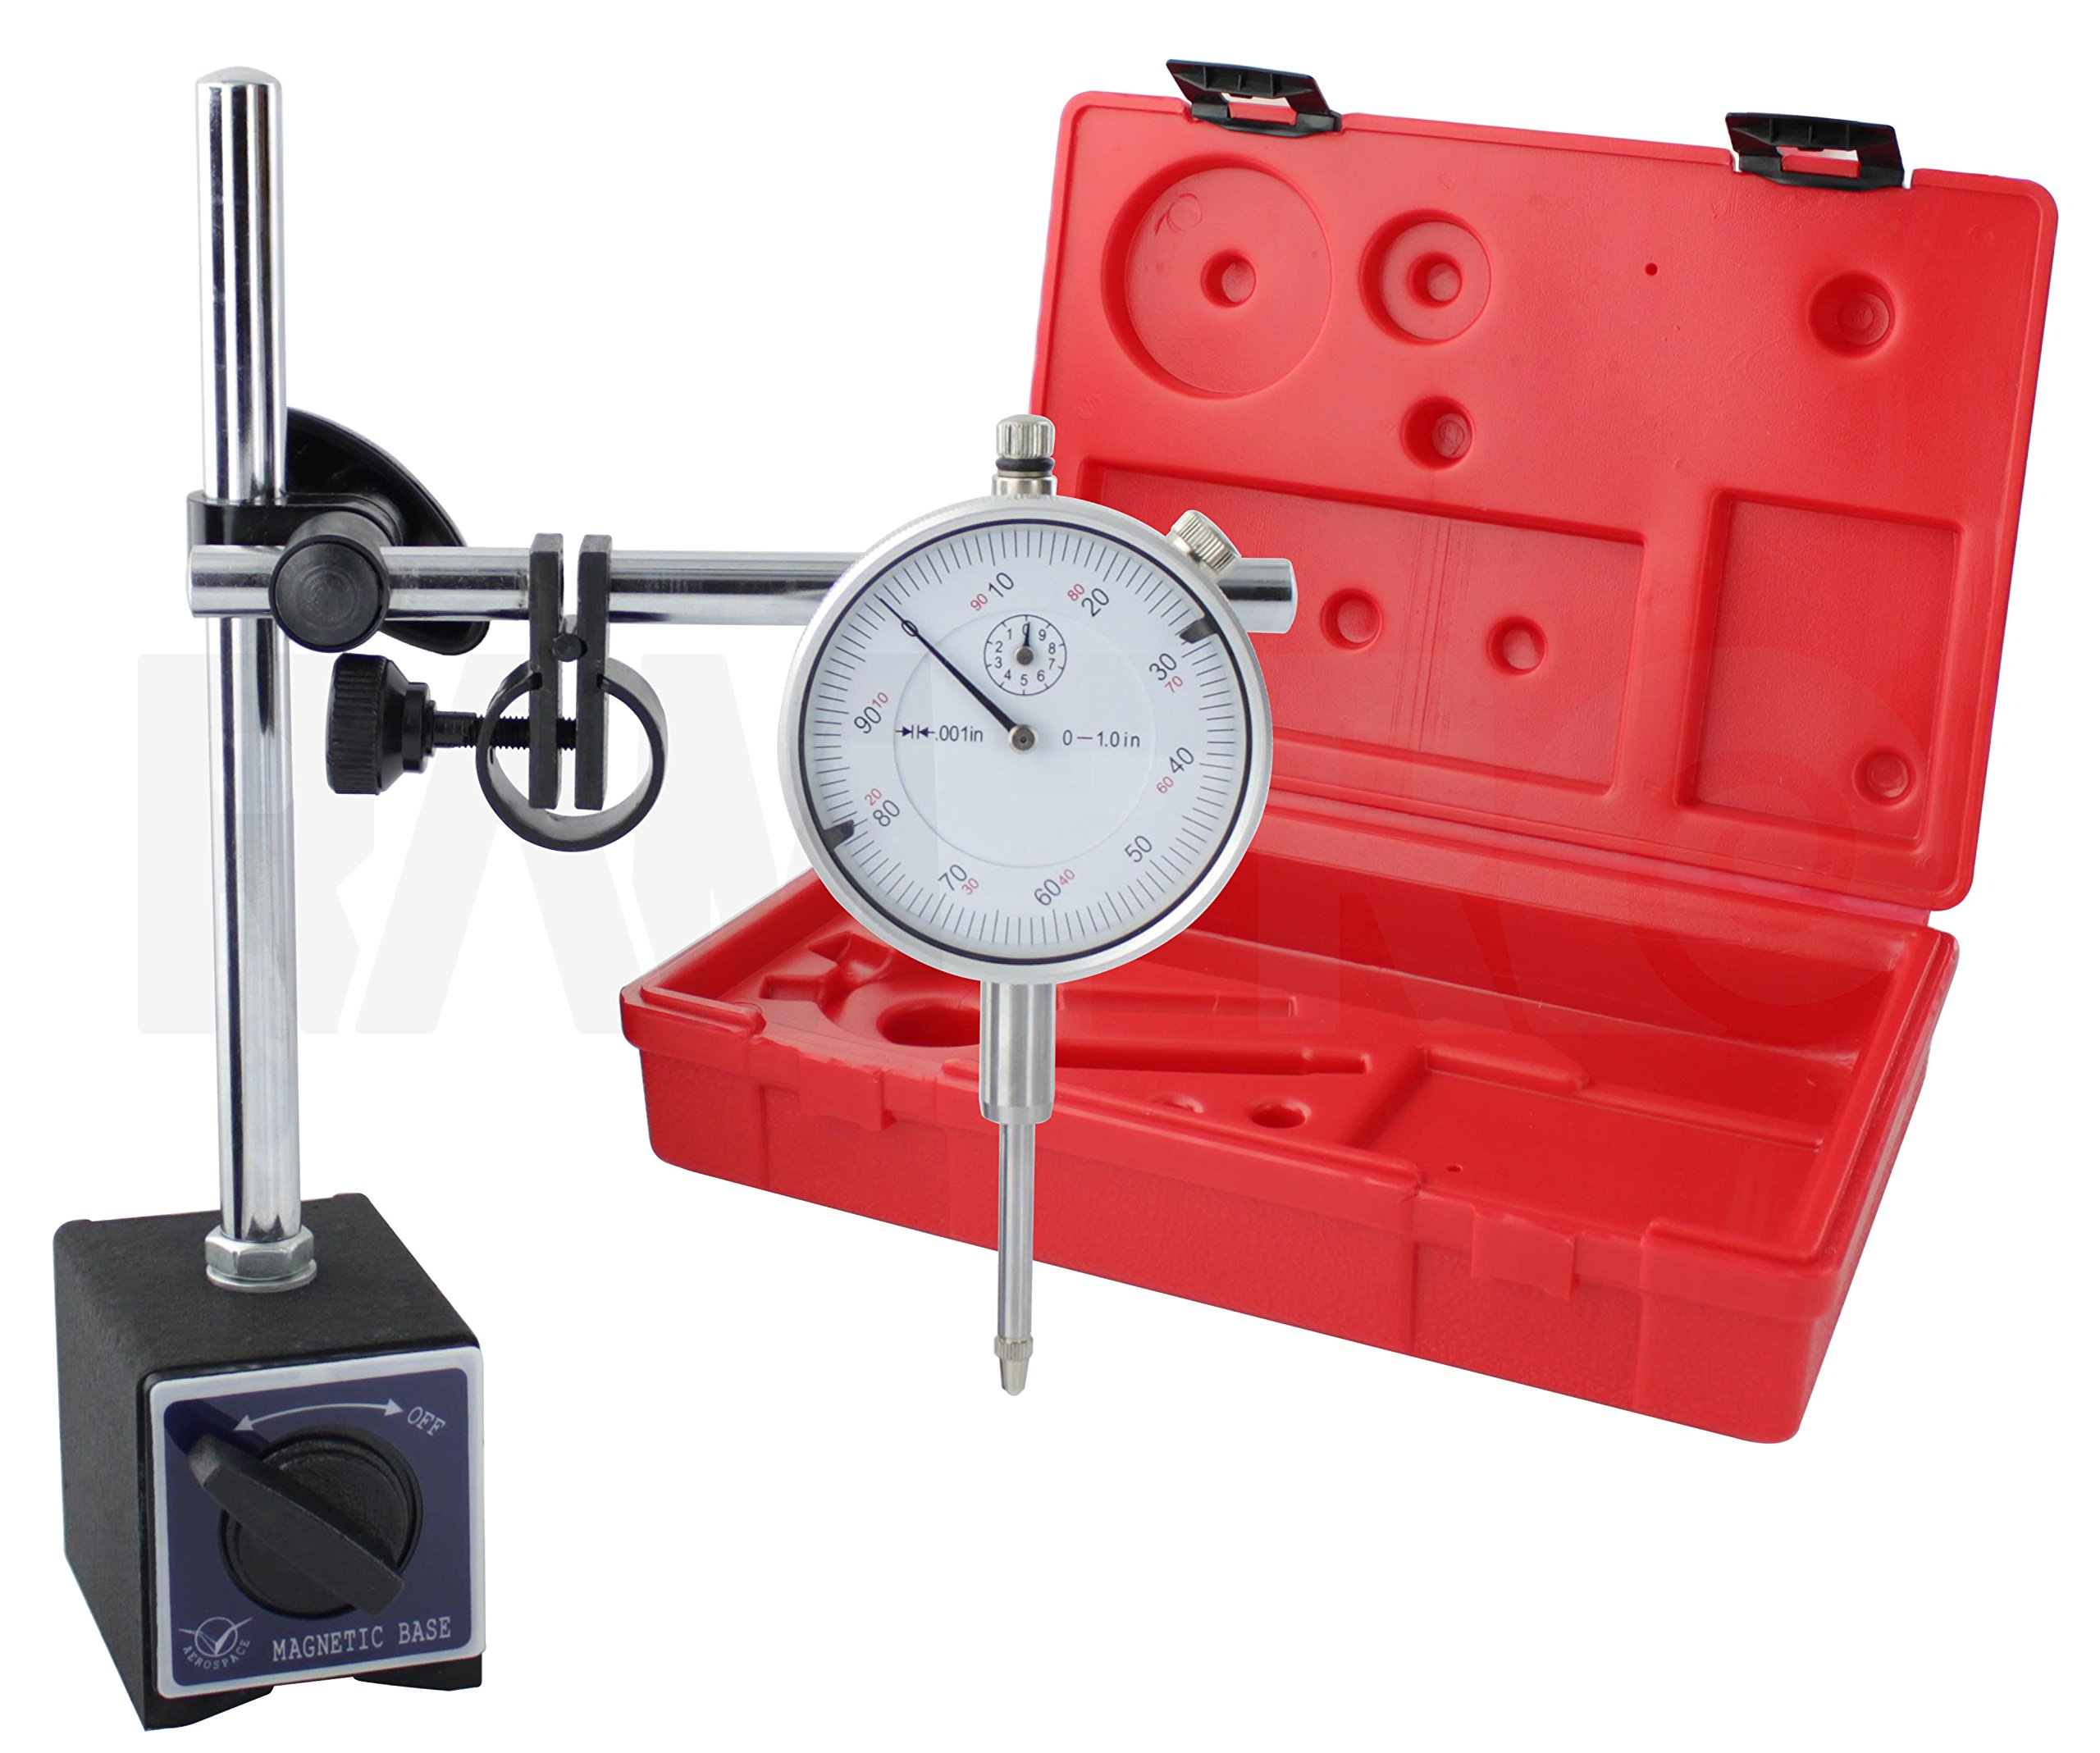 RamPro Portable Multi-Position Dial Indicator Point Precision Inspection Set with Adjustable Magnetic Base - Stand Combo Kit   On/Off Magnet Switch